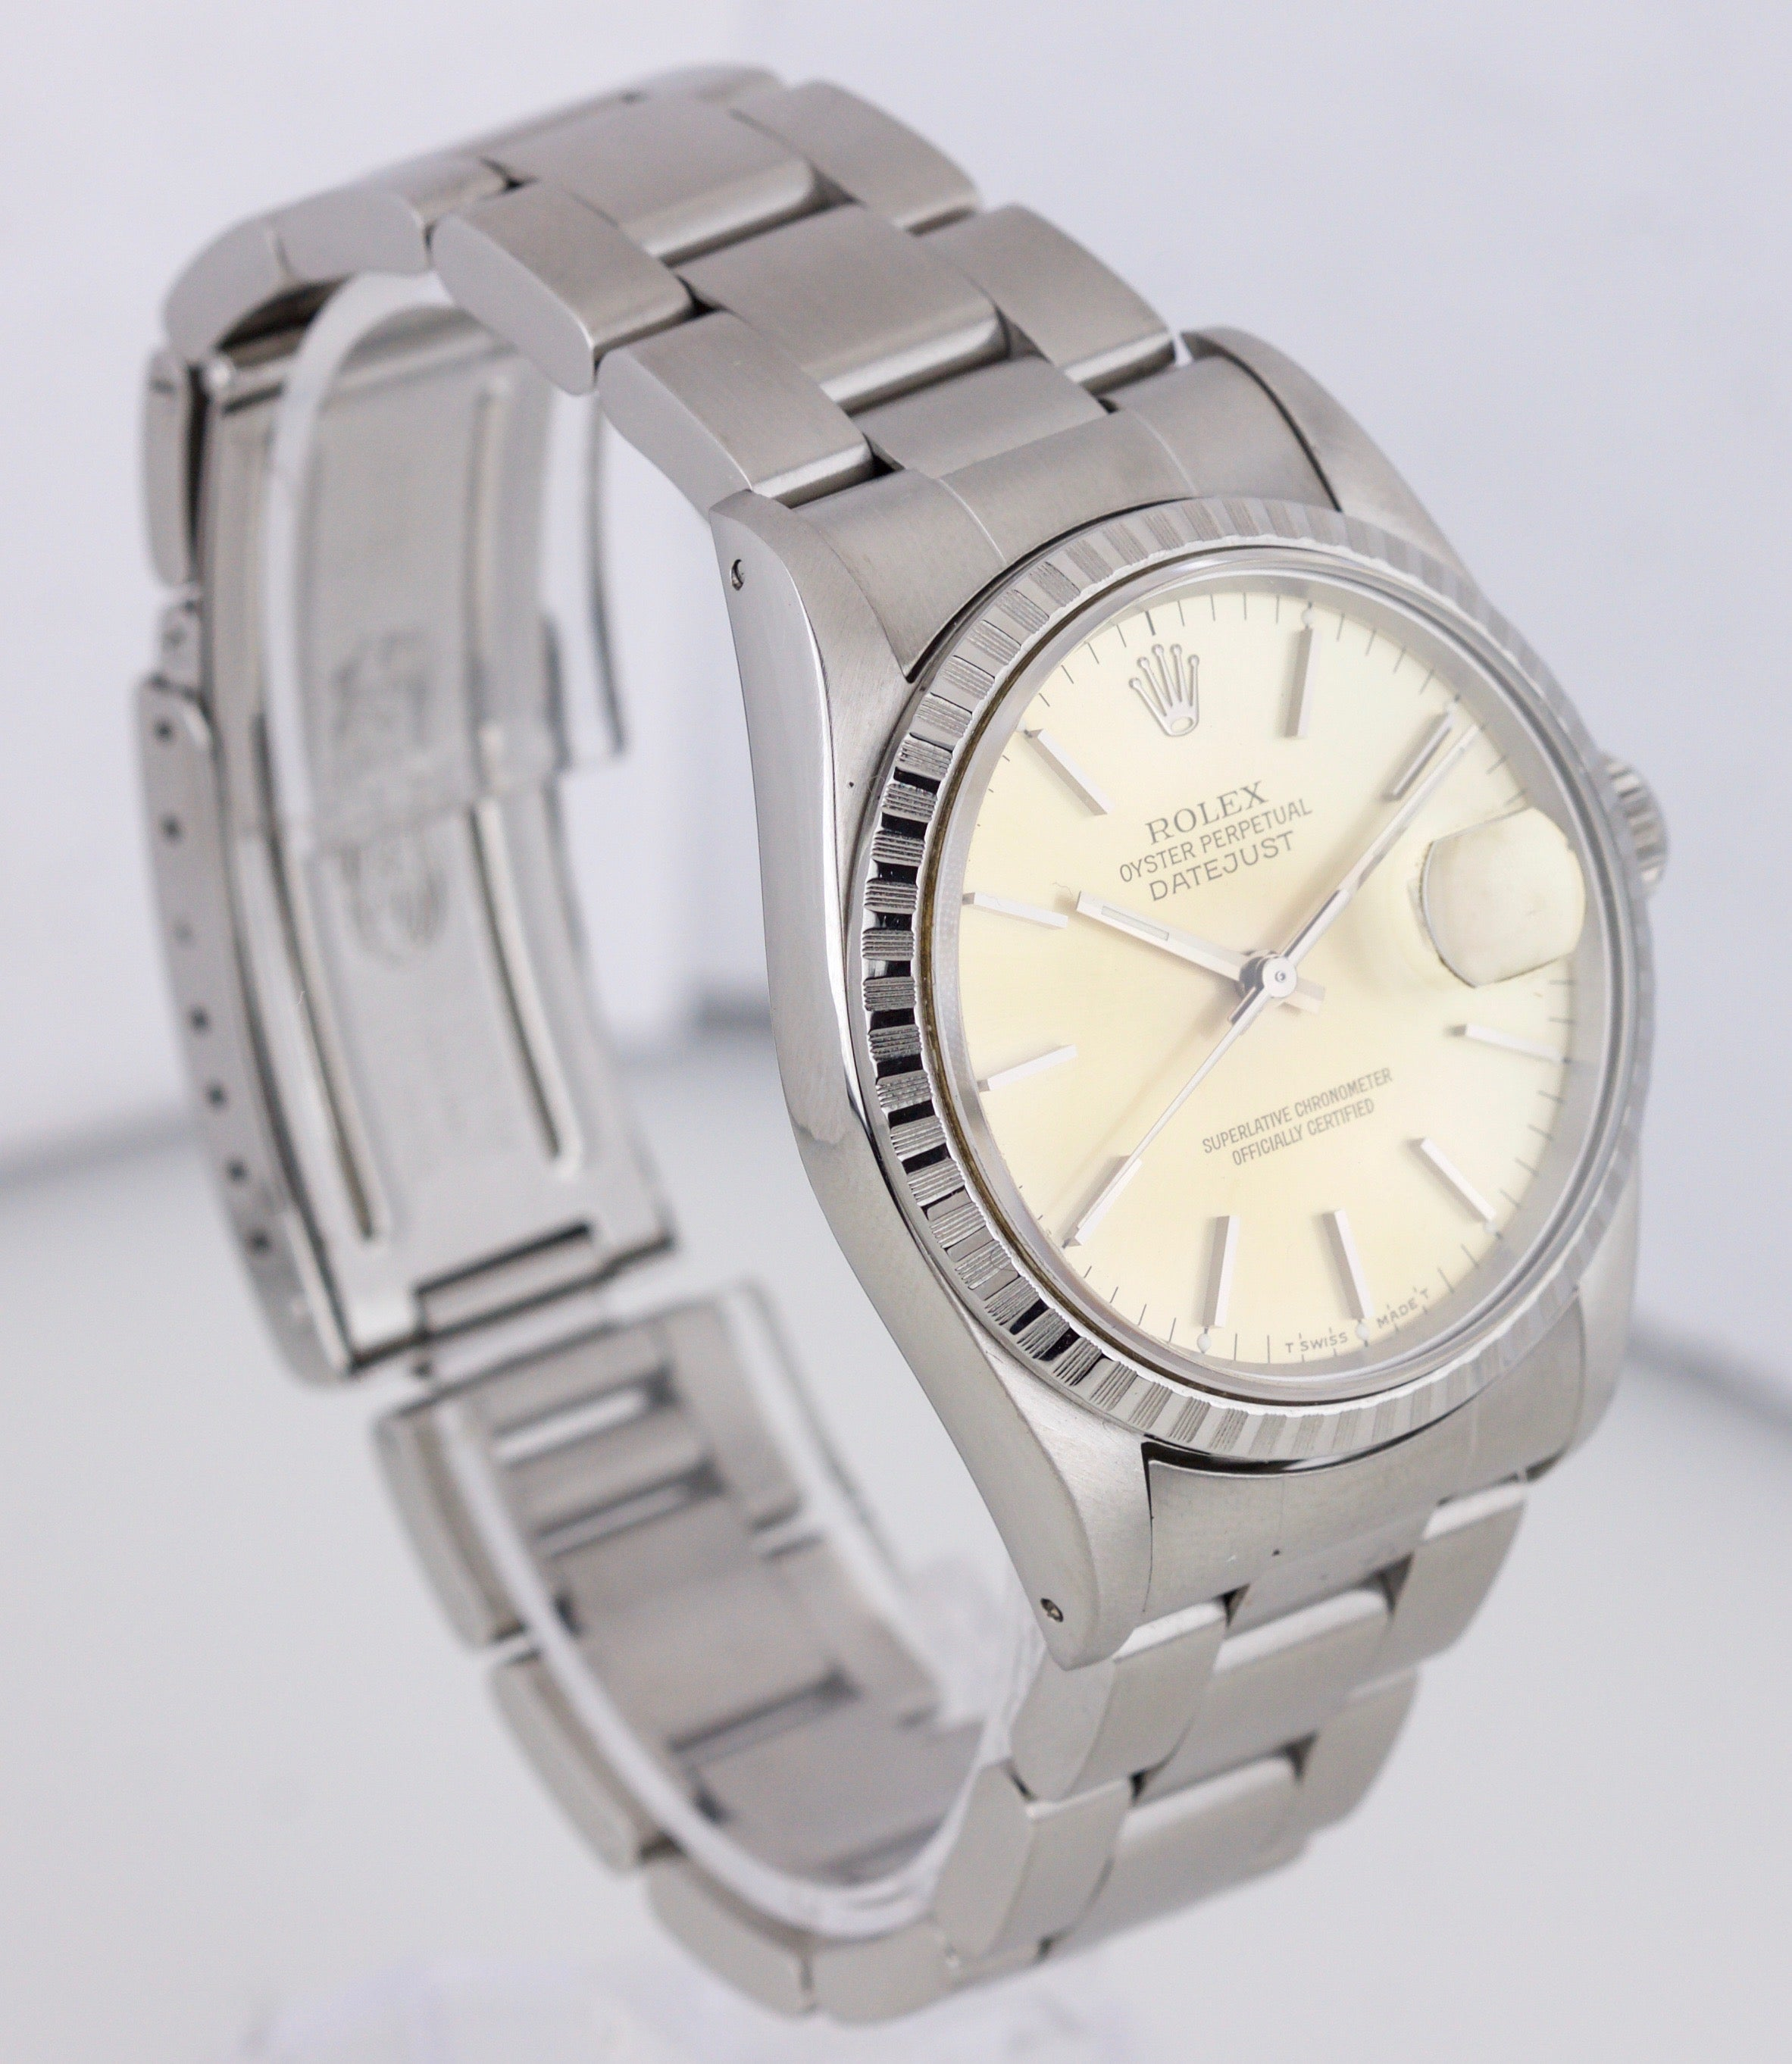 1994 Rolex DateJust Silver Tone Patina 36mm S 16220 Stainless Steel Oyster Watch